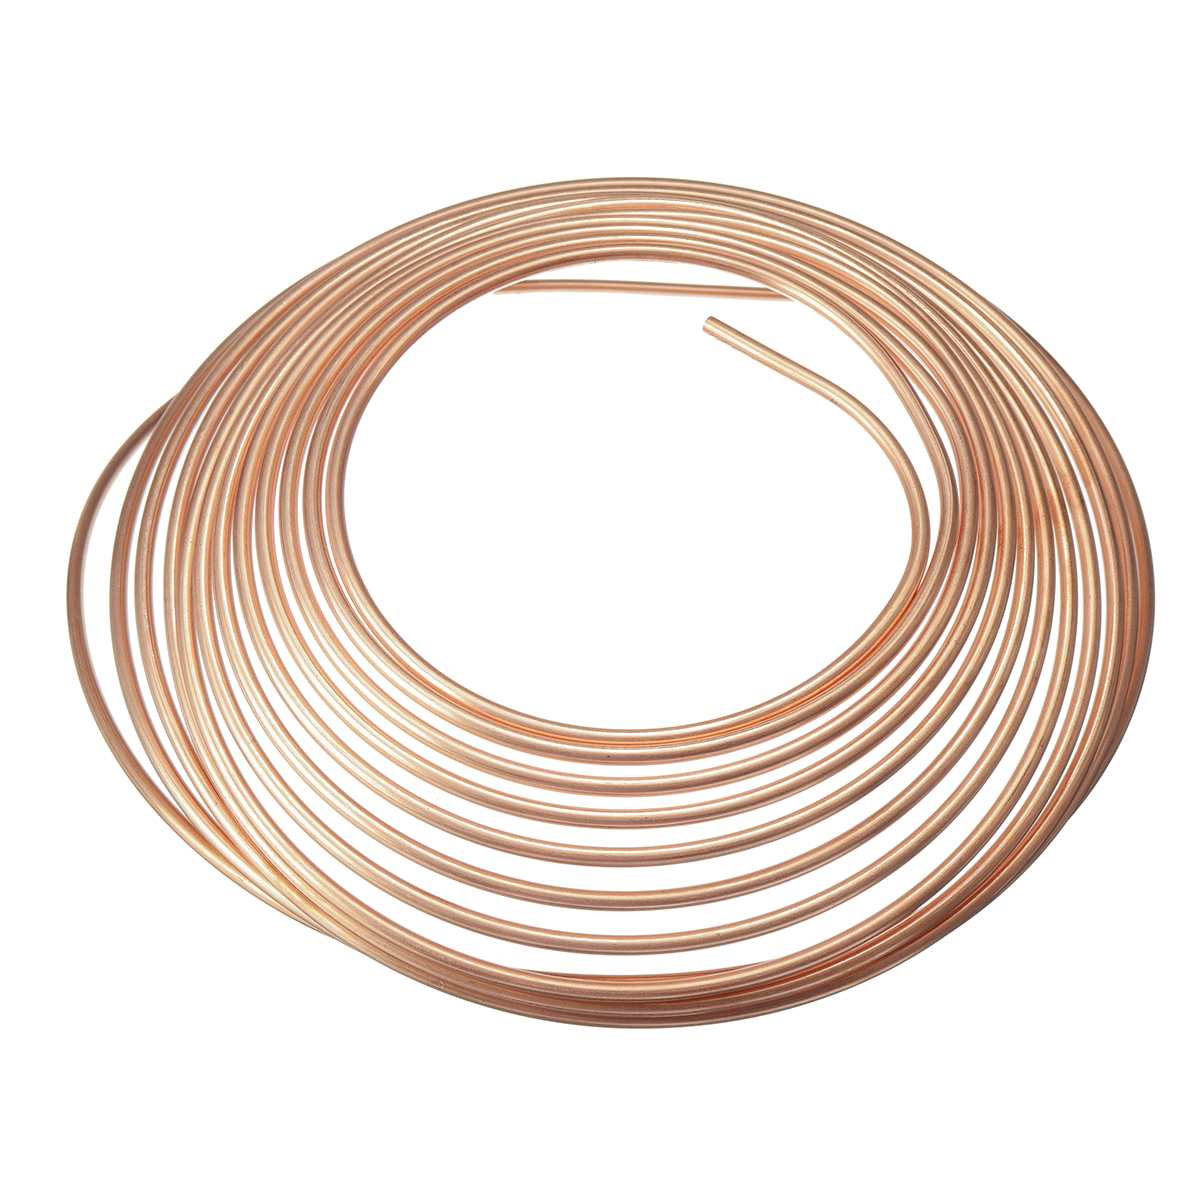 25ft 7.62m Roll Tube Coil Of 3/16 OD Copper Nickel Brake Pipe Hose Line Piping Tube Anti-rust